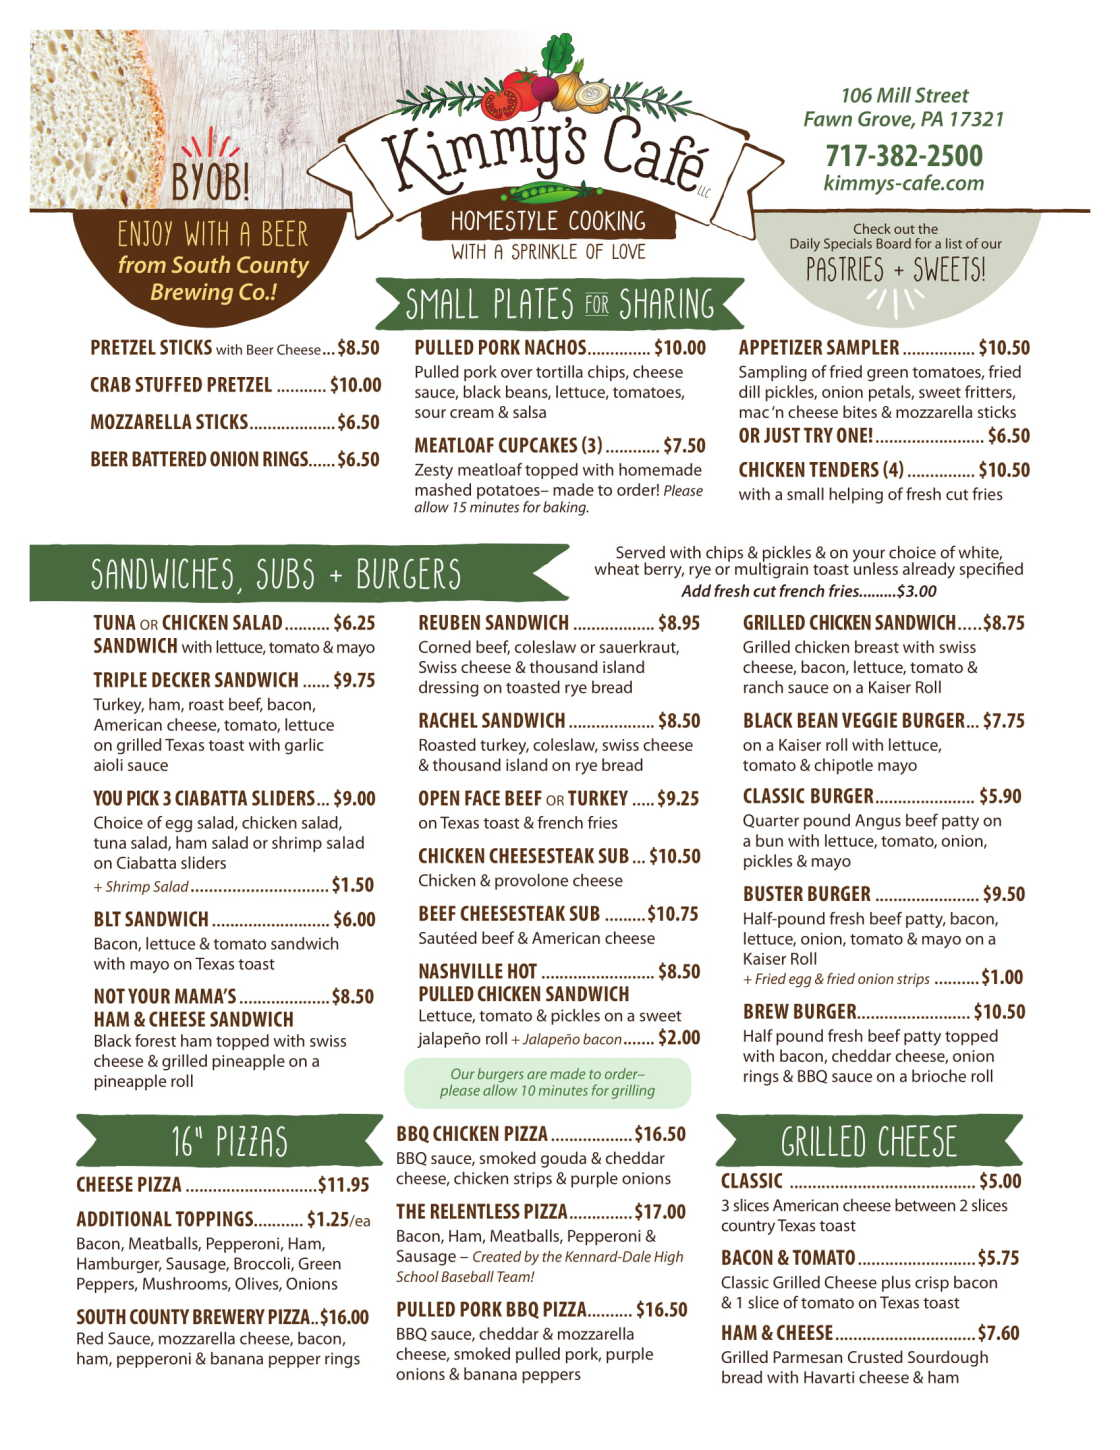 Kimmy's Cafe Sandwiches, Subs & Pizzas